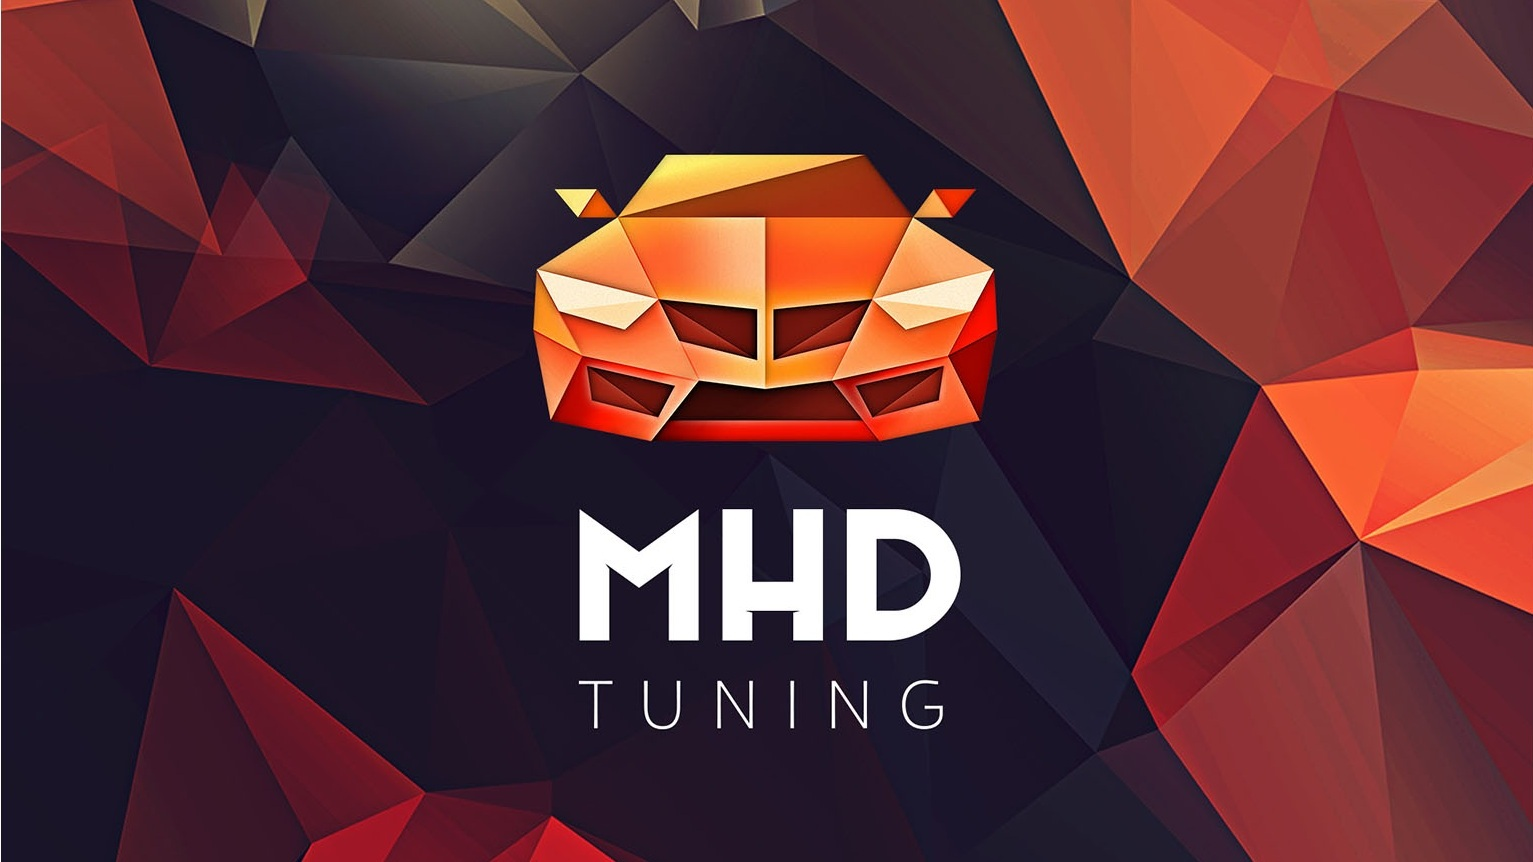 MHD Flasher  is the first Android handheld application to bring ECU tuning and monitoring to the BMW N54, N55, S55, B58 and N13 engine. The MHD Flasher reveals the immense margin of power BMW left on the table with the N54, N55, S55, B58 and N13 motor, while still retaining the sophistication of the original engine management program.   Website  /  Instagram  /  Facebook